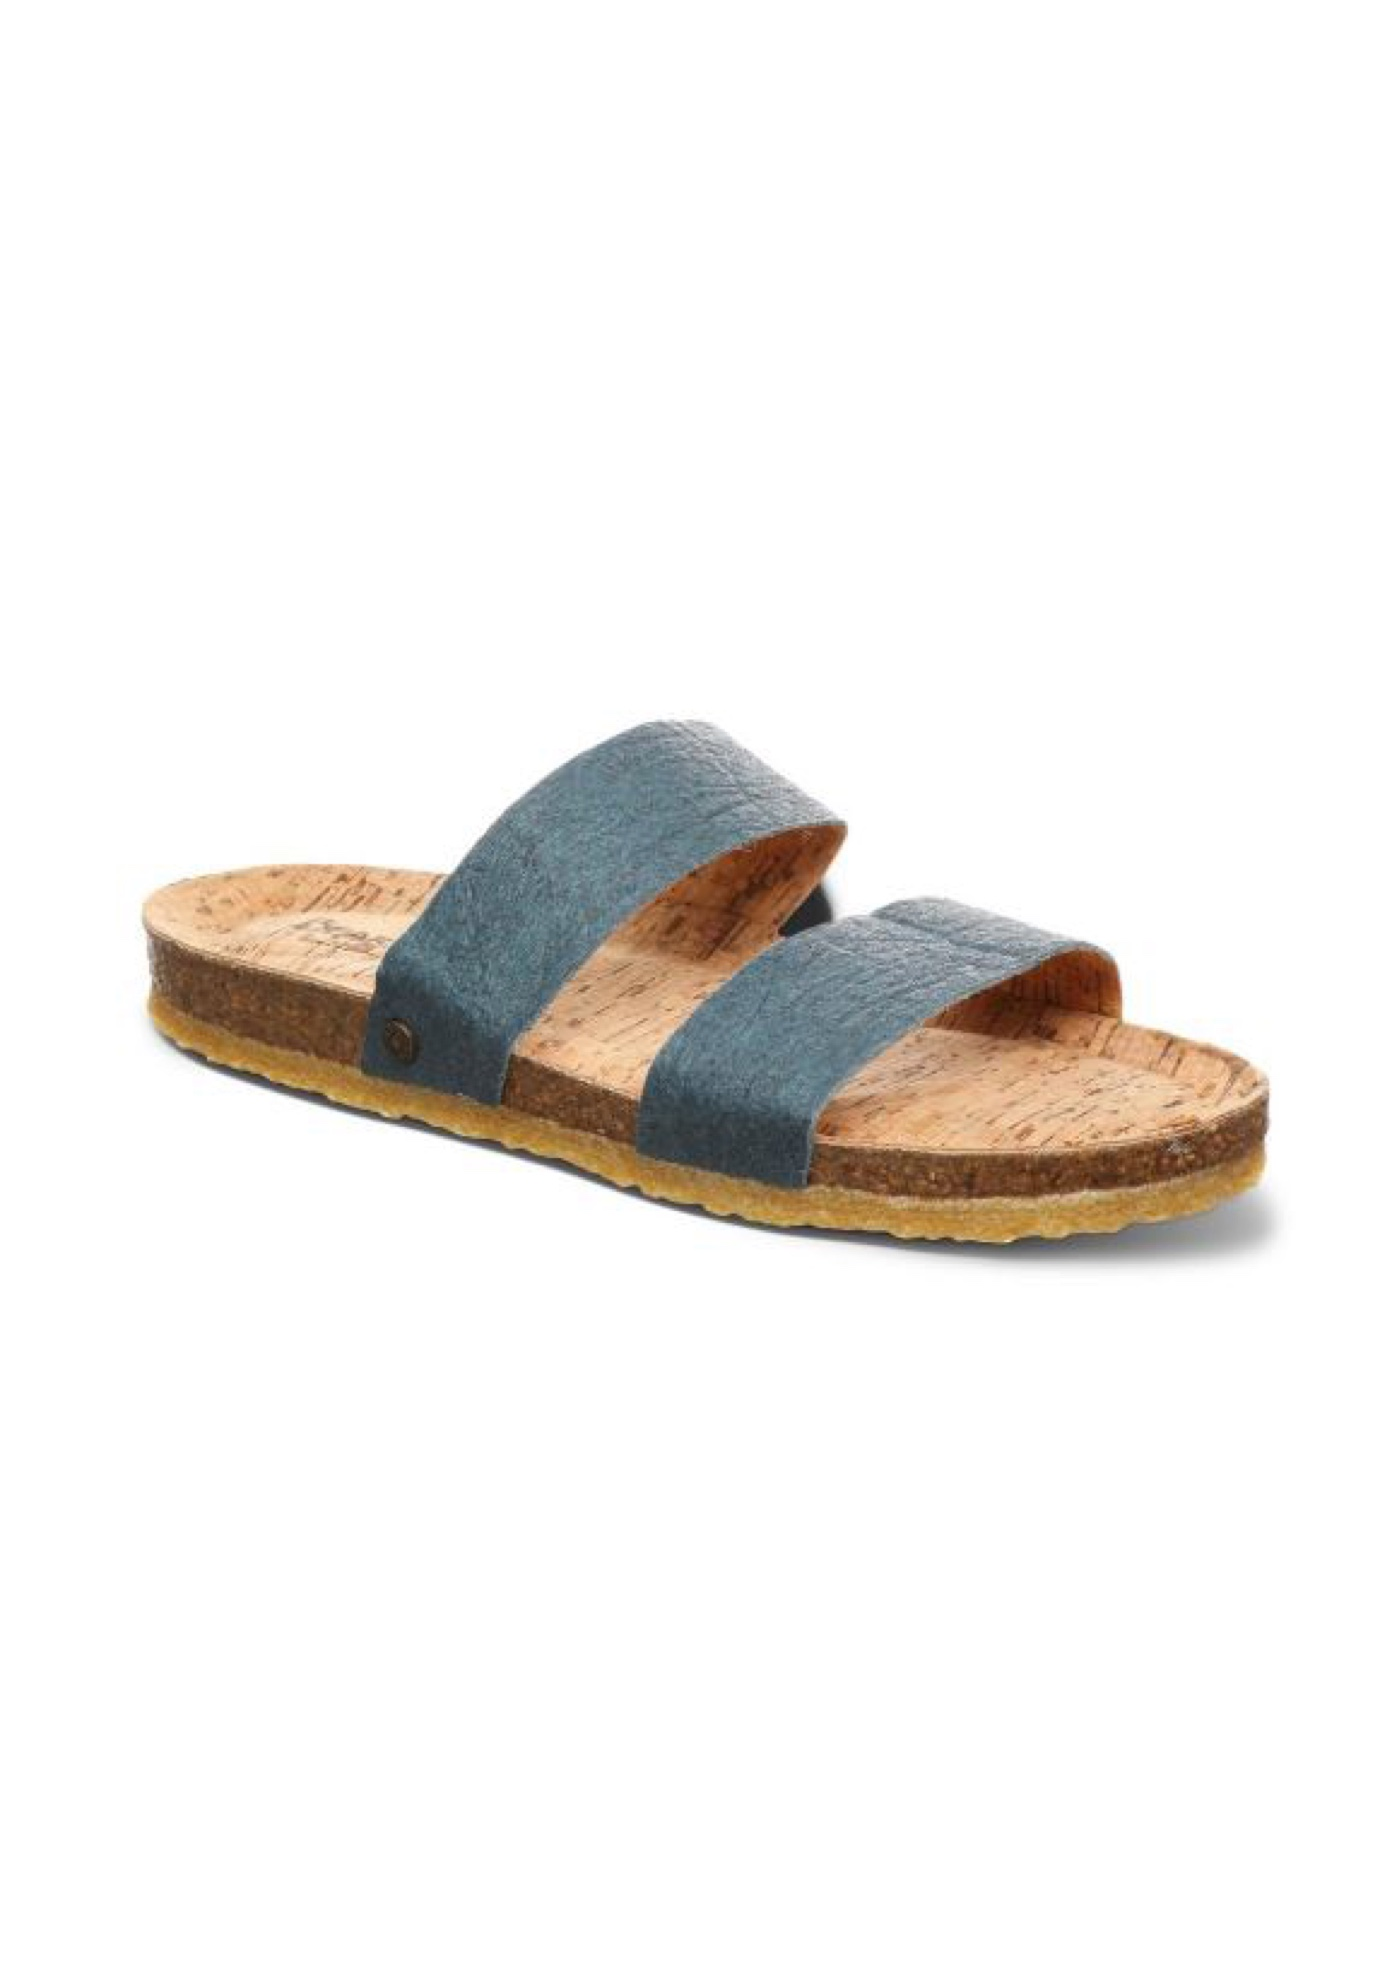 Lilo Sandals by Bearpaw,